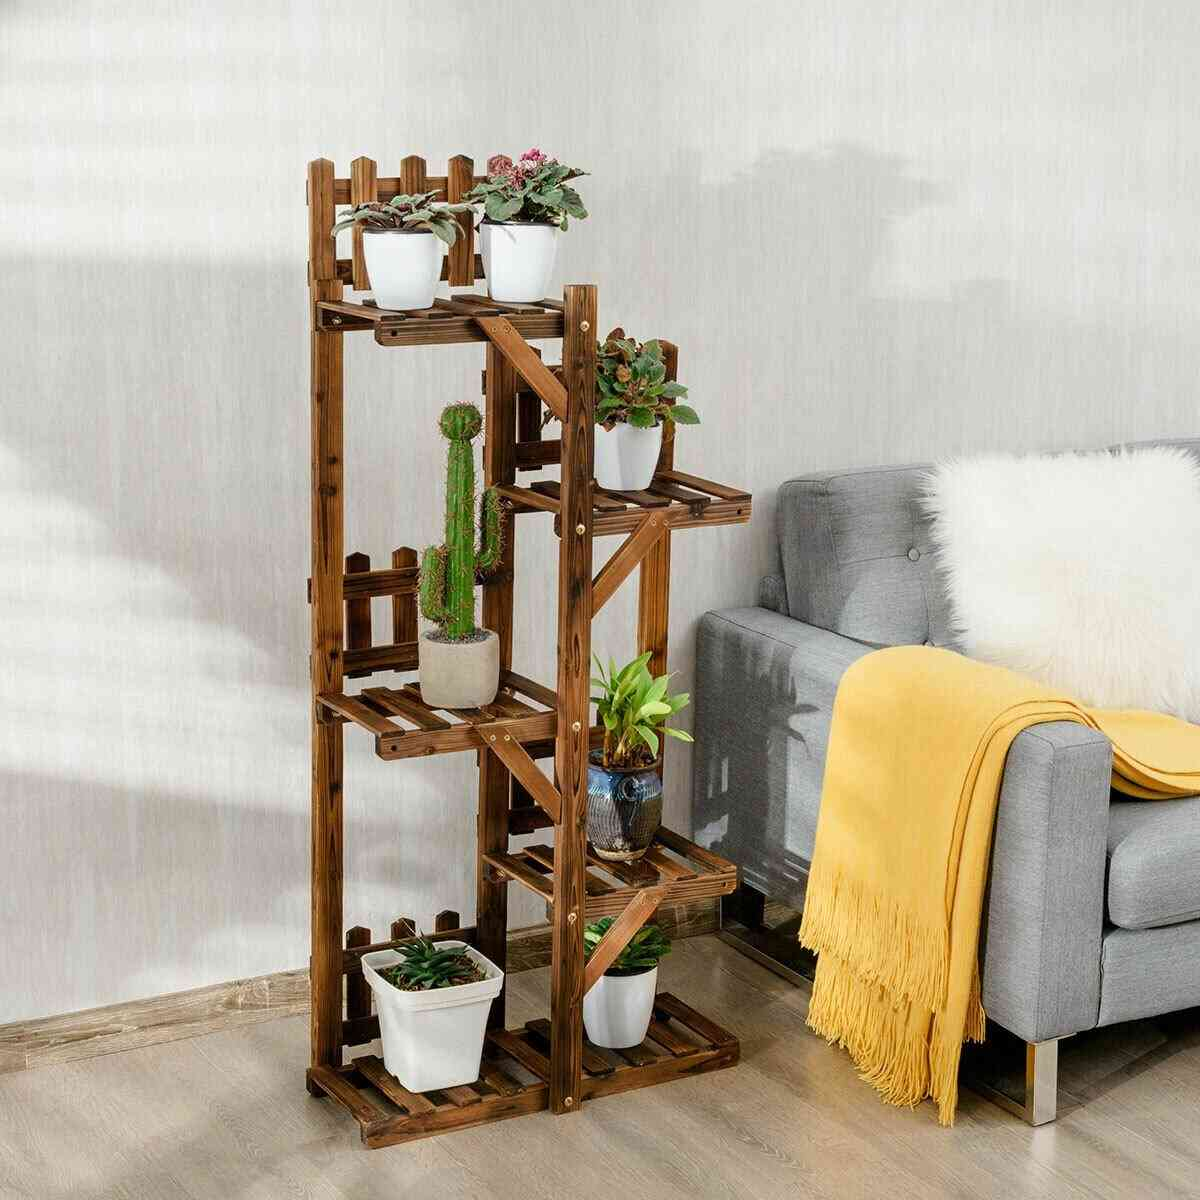 5-tier Flower Rack Wood Plant Stand